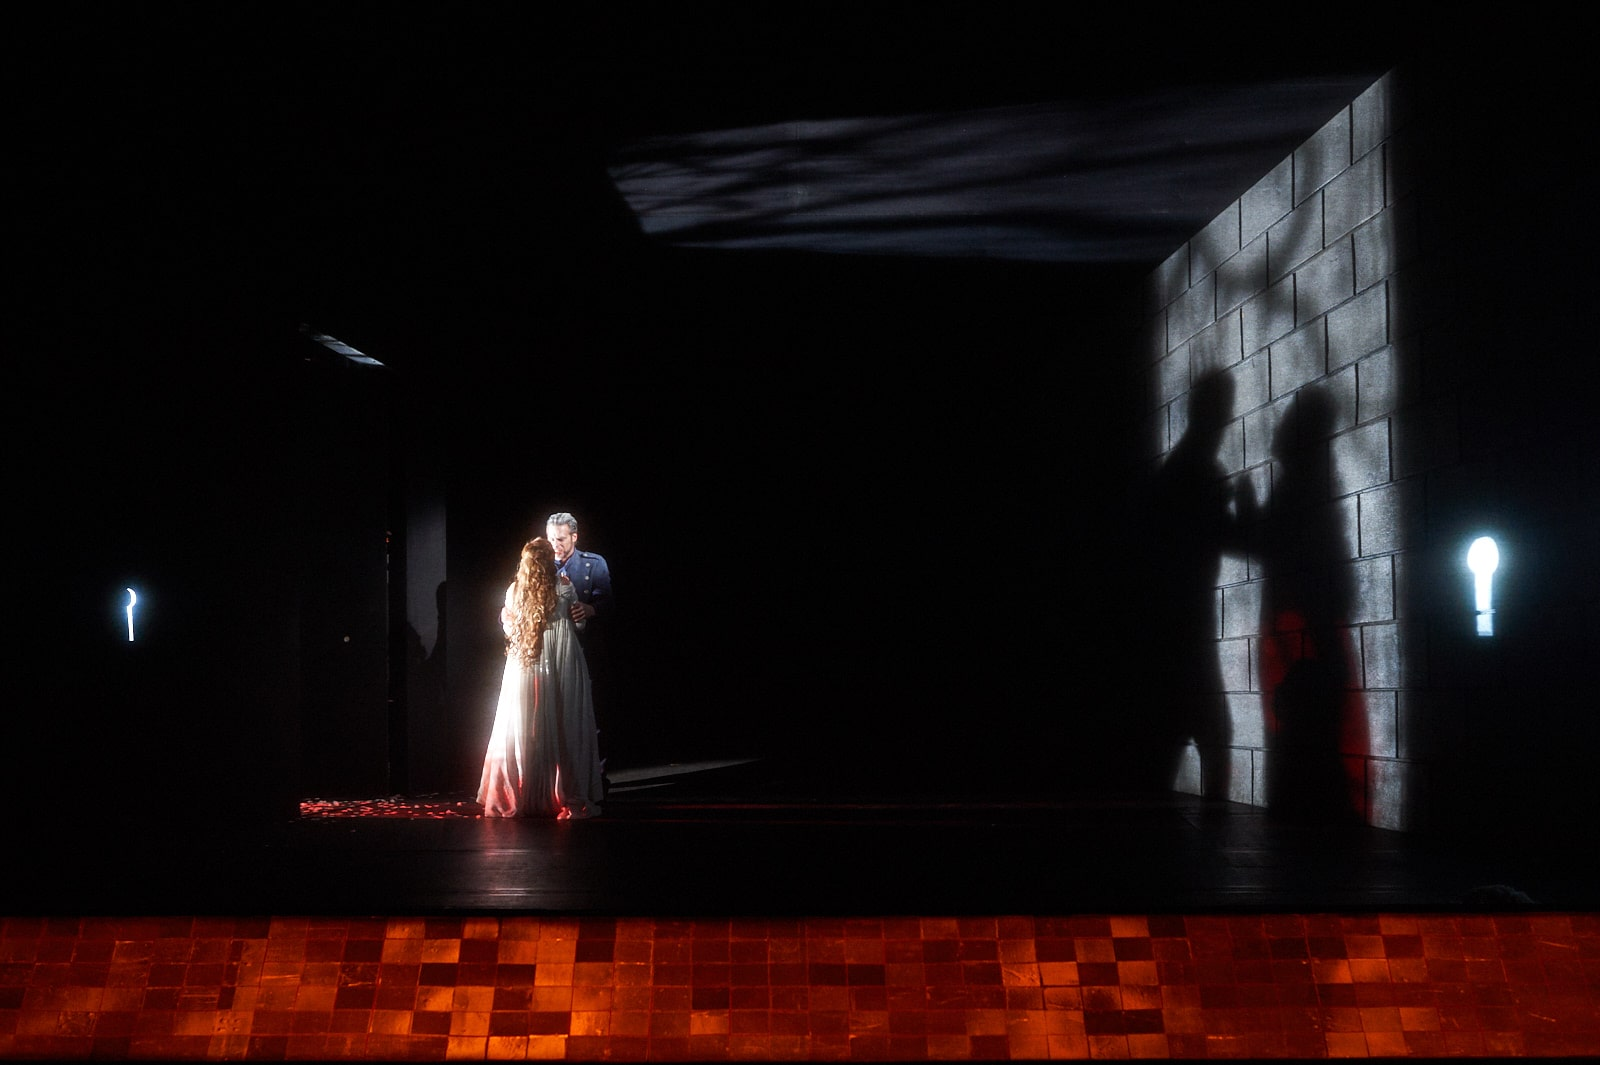 Woman in white dress and man in blue uniform stand clasped, casting shadows on brick wall - shimmering amber tiles in foreground.